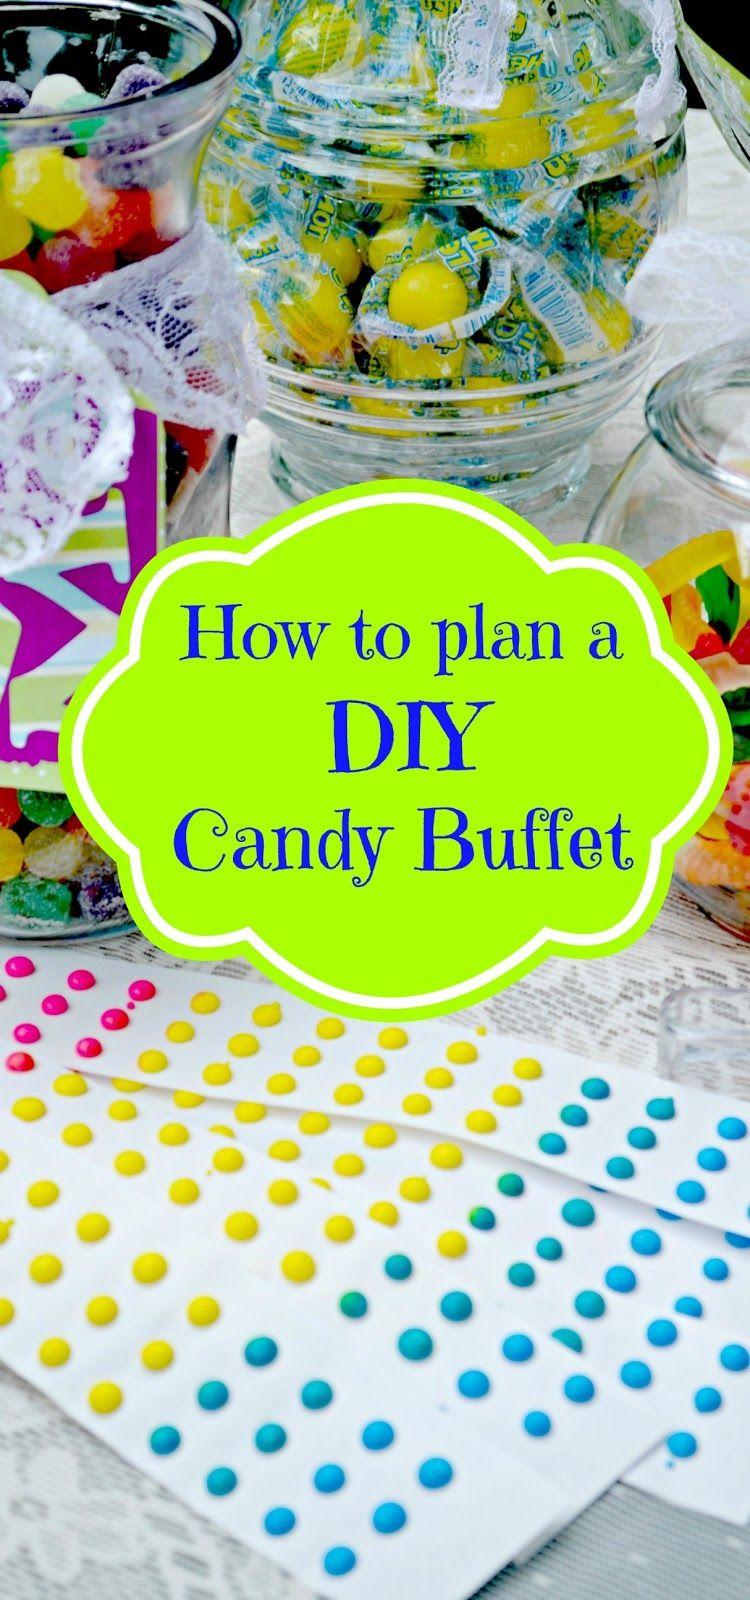 How To Plan A Diy Candy Buffet For Your Party Birthday Wedding Or Event On Budget